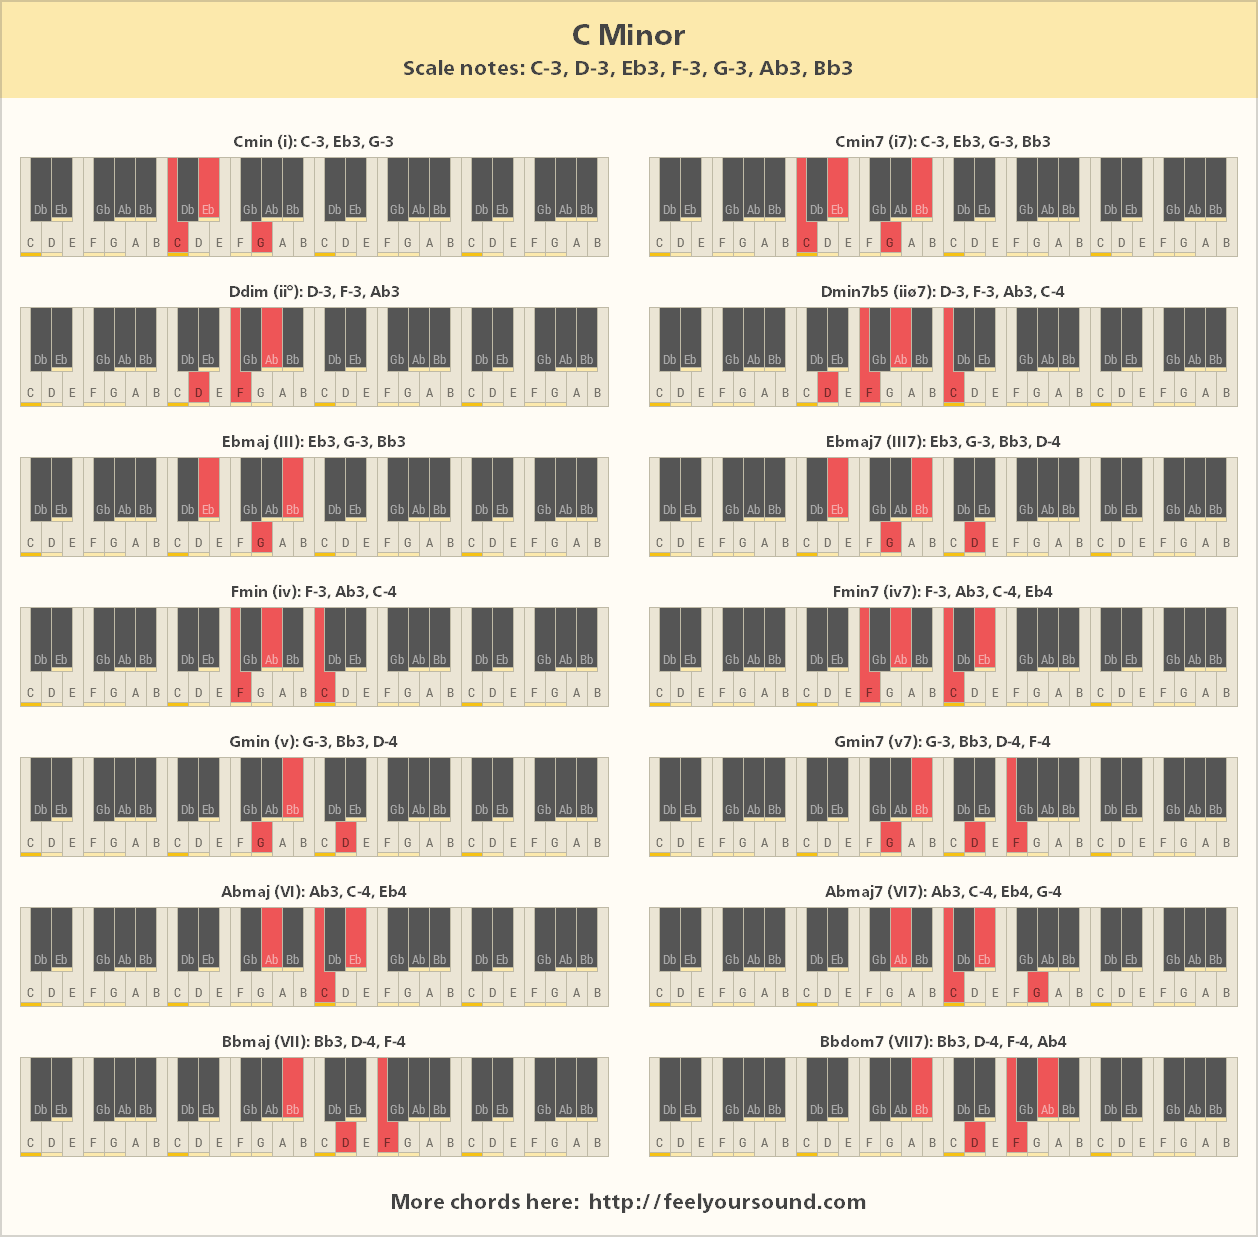 Chords And Scale Notes Of C Minor